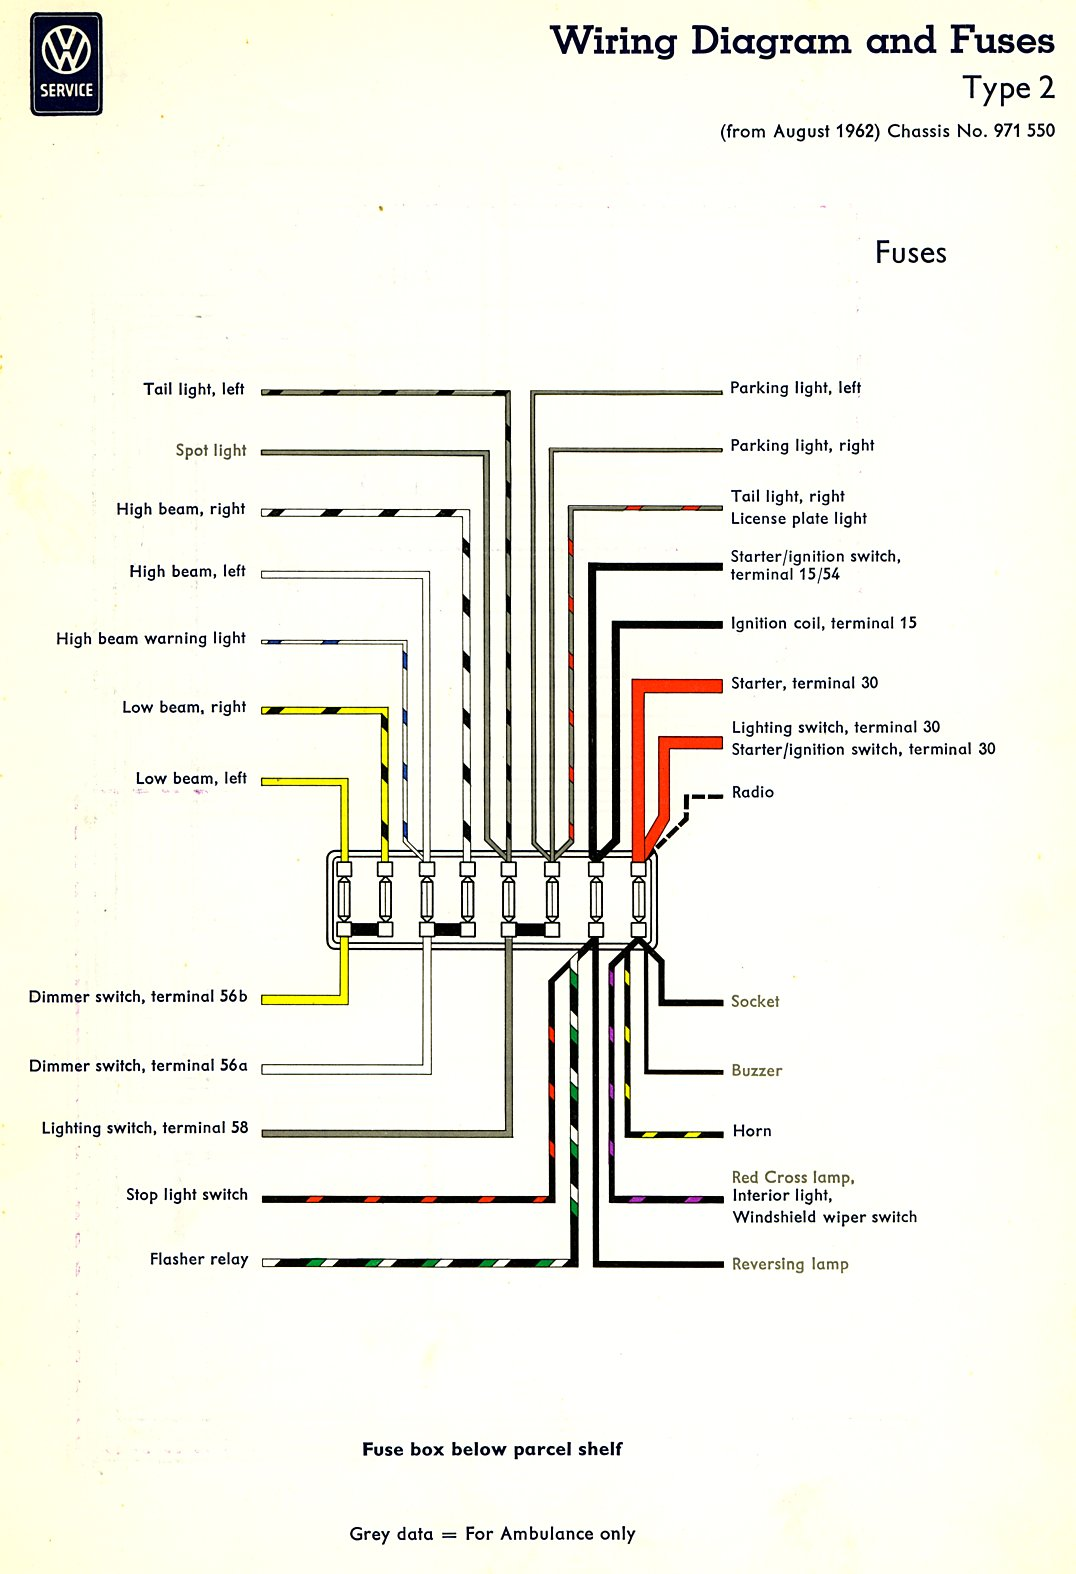 bus_63_fuses 1963 bus wiring diagram thegoldenbug com Volkswagen Type 2 Wiring Harness at crackthecode.co